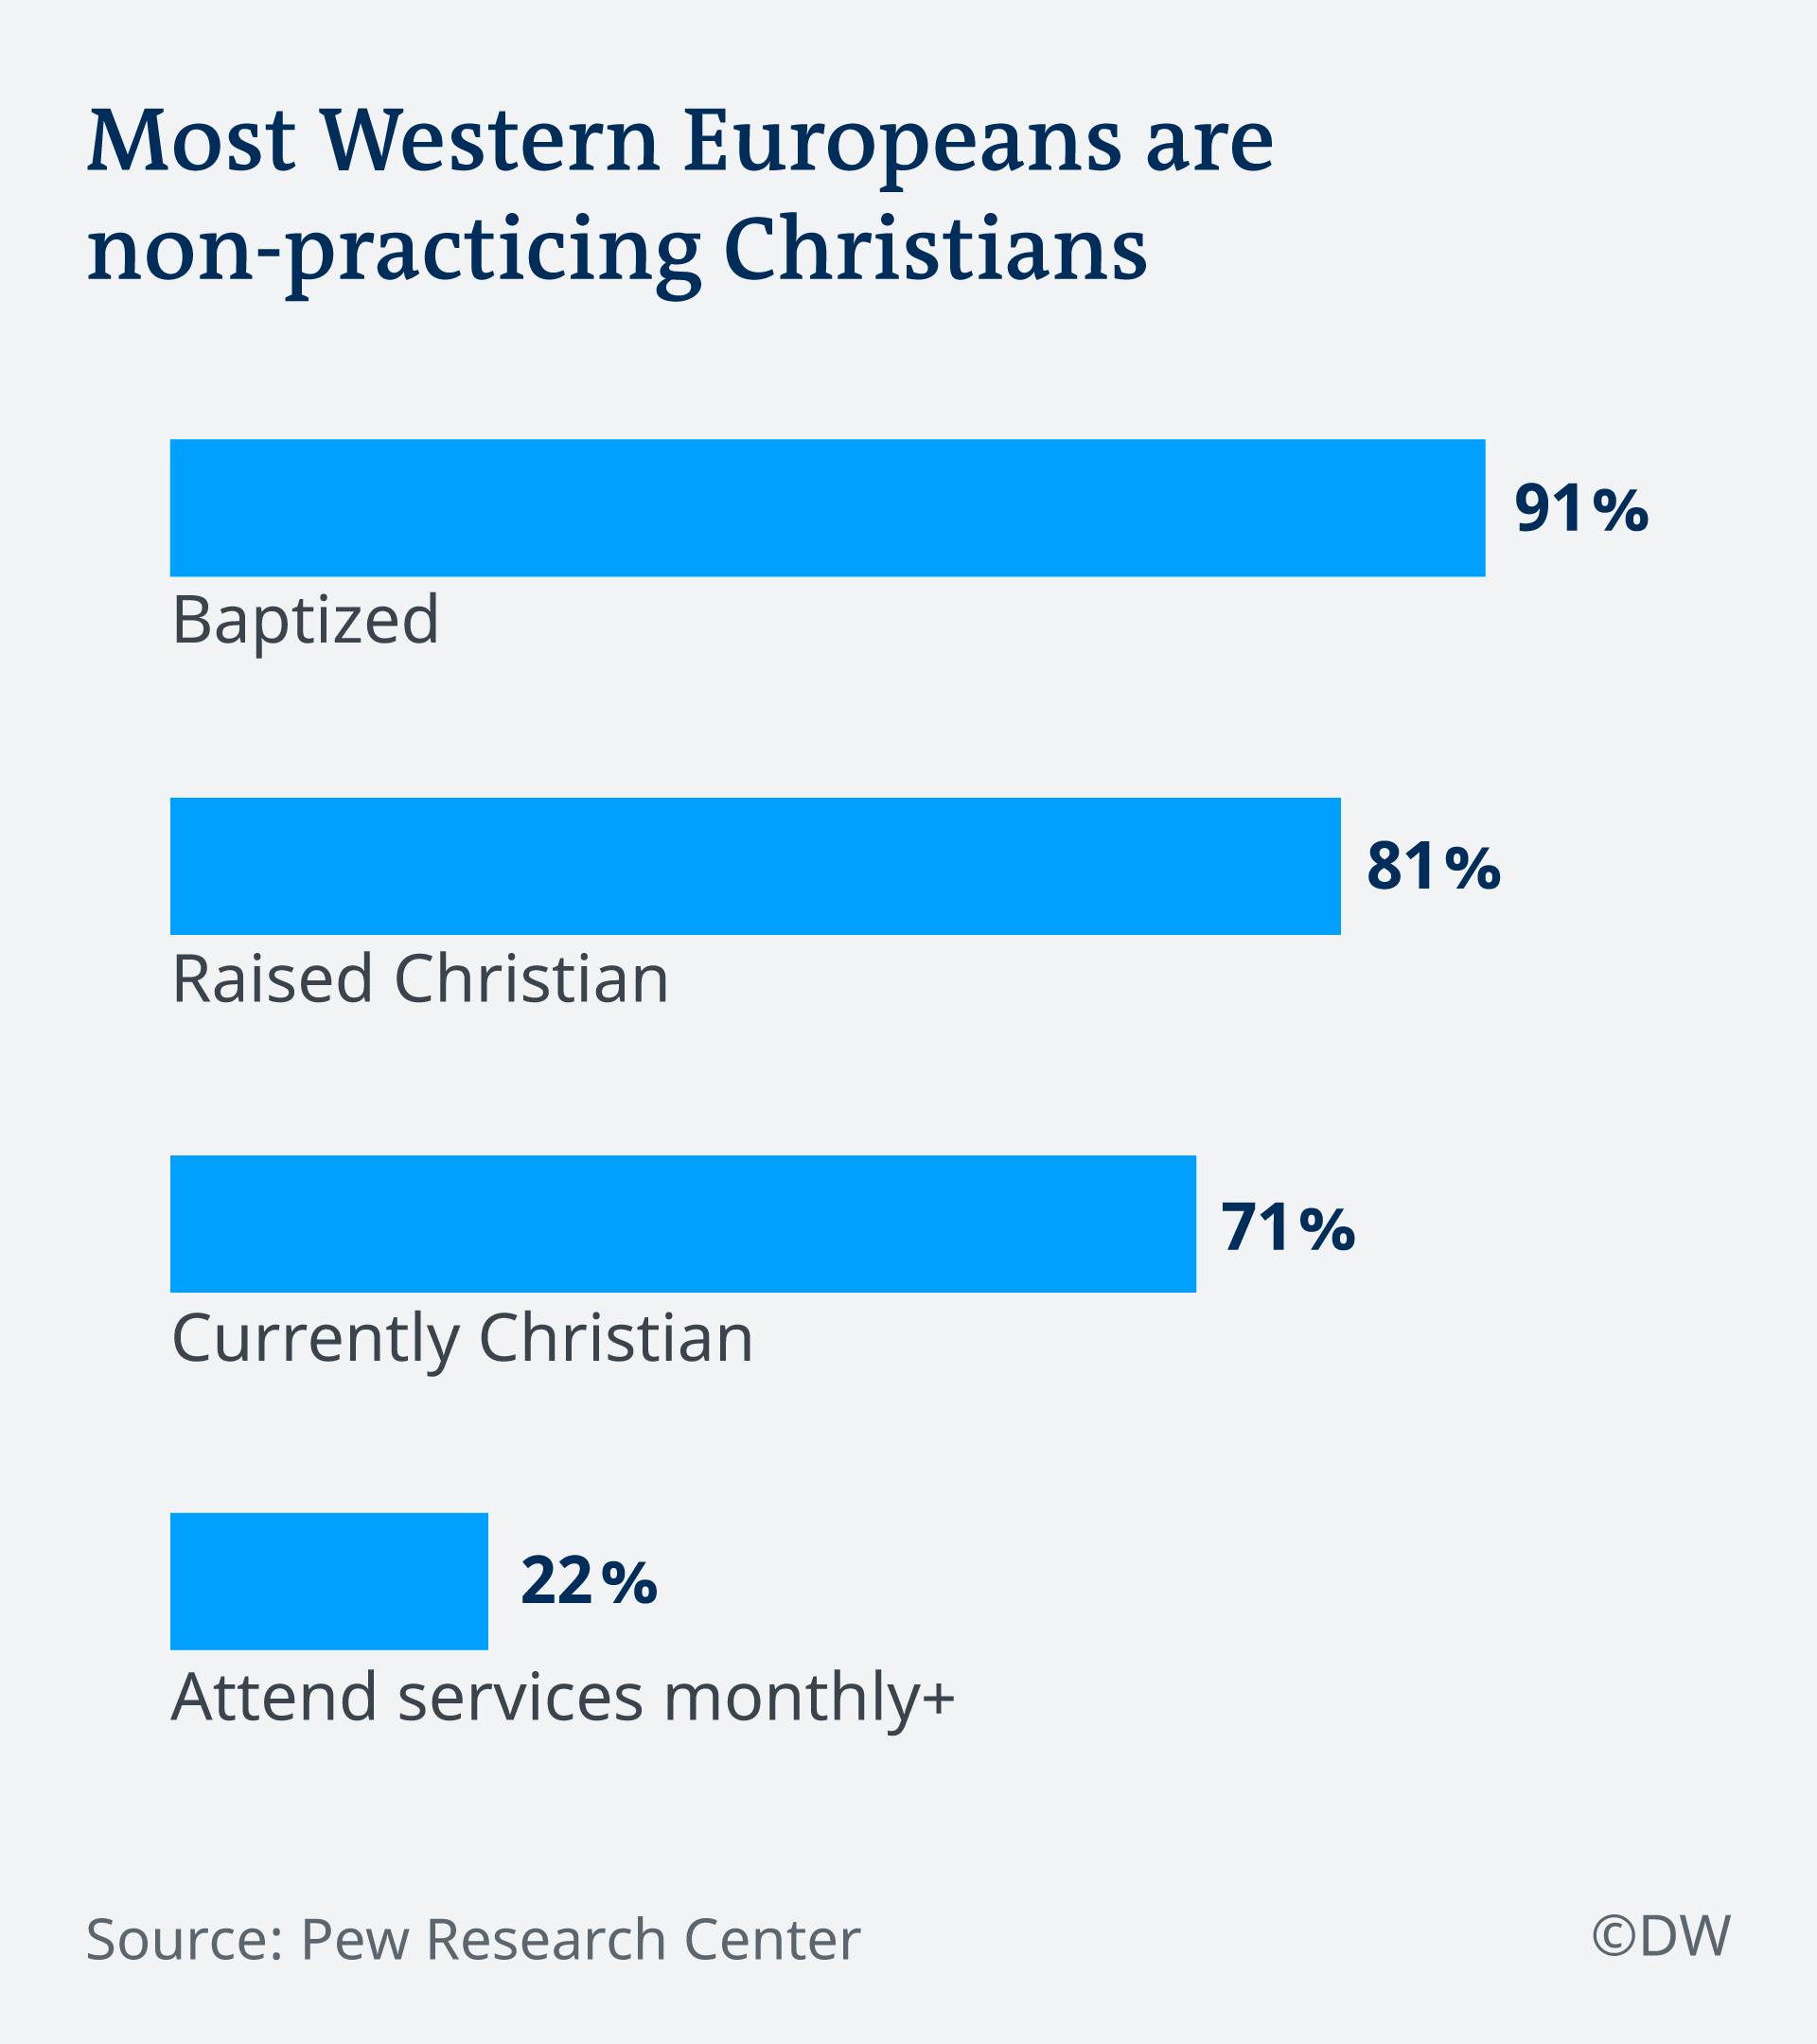 Most Western Europeans are non-practicing Christians graph